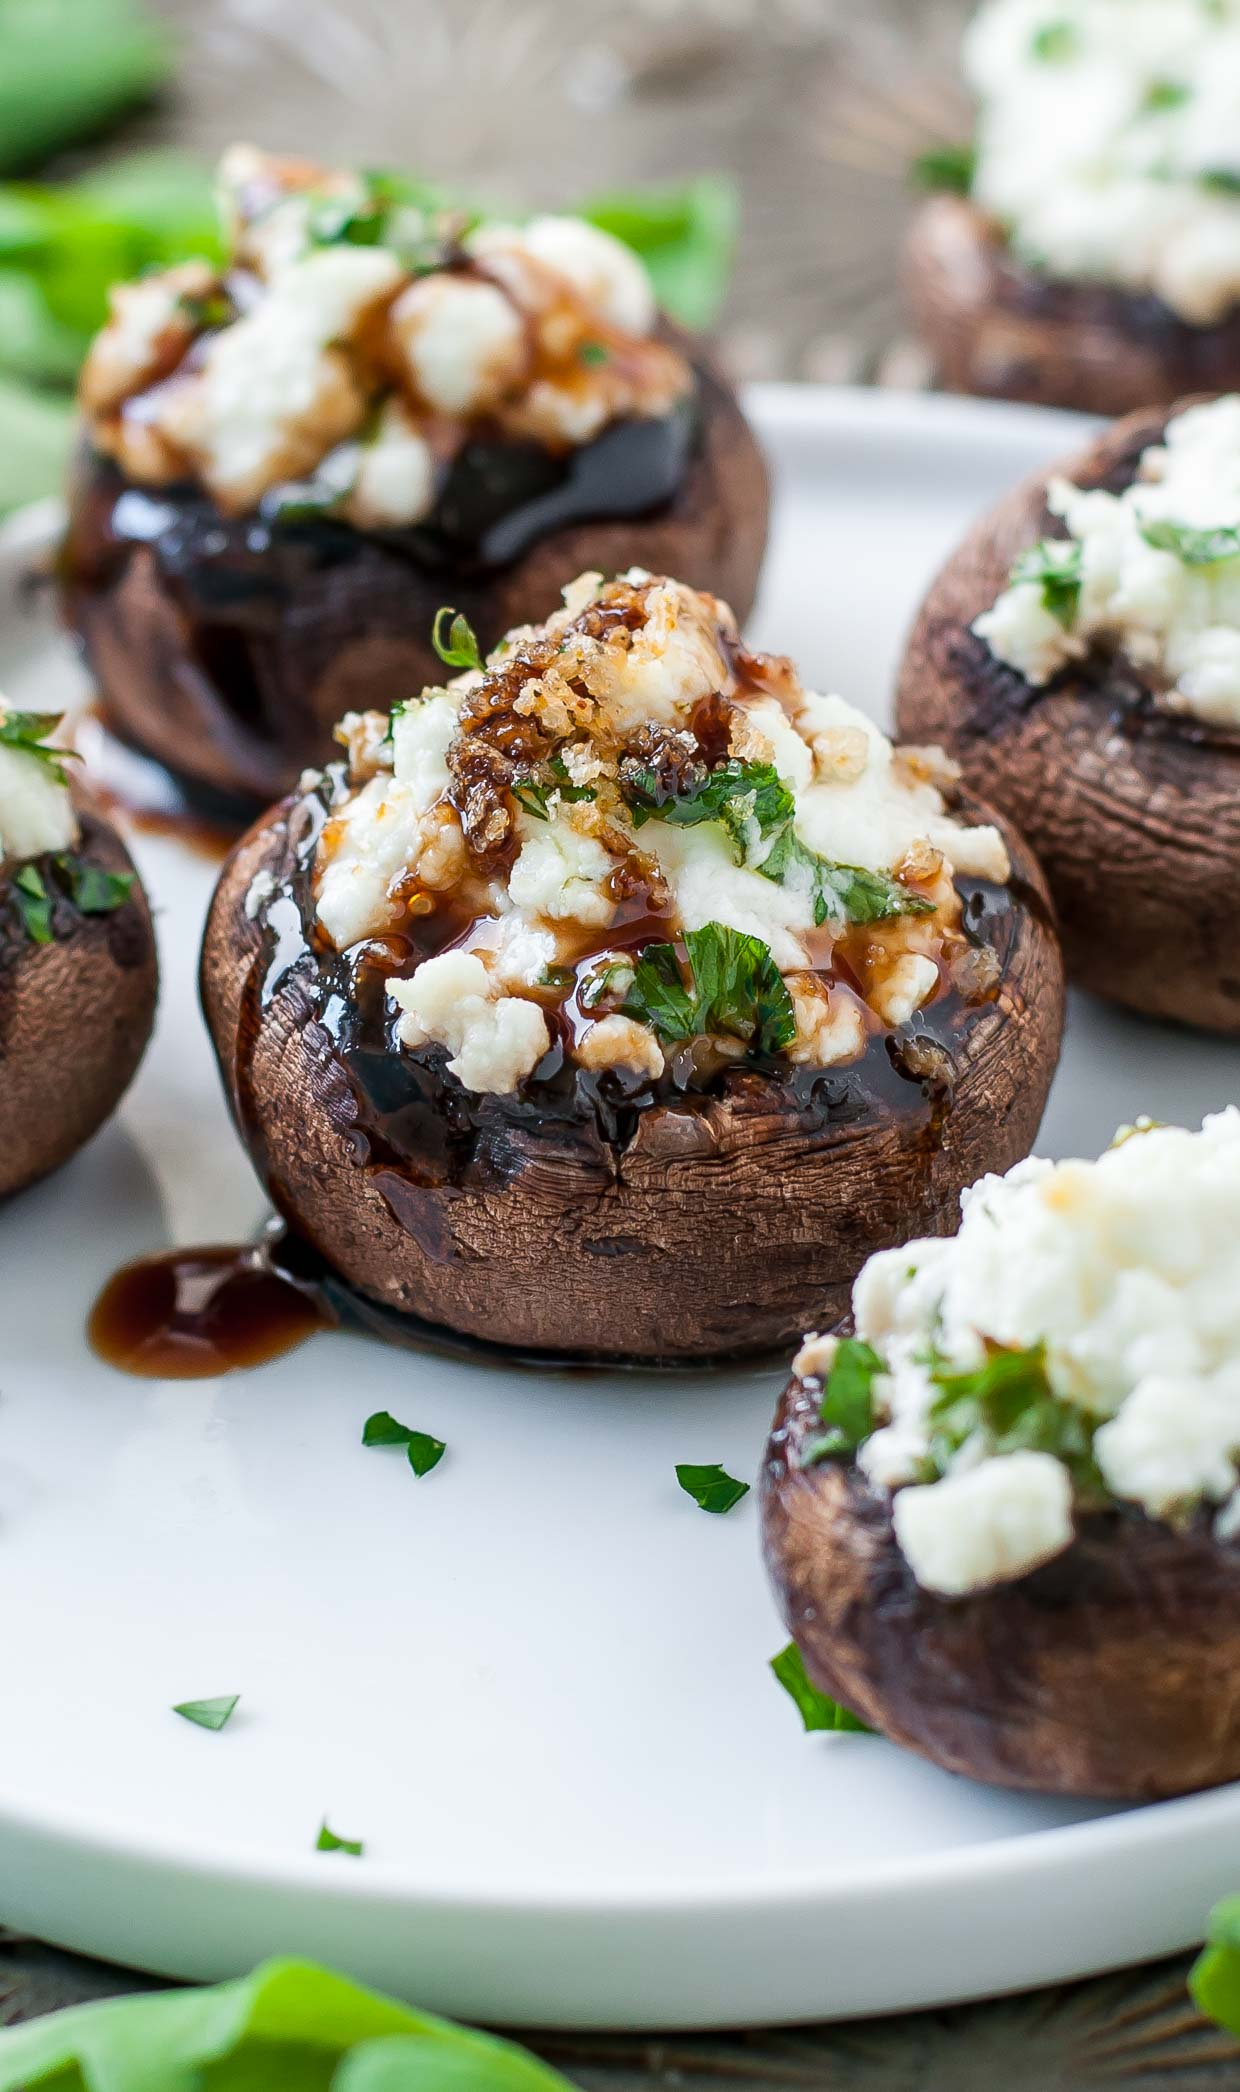 Easy Herbed Goat Cheese Stuffed Mushrooms make a tasty party appetizer!